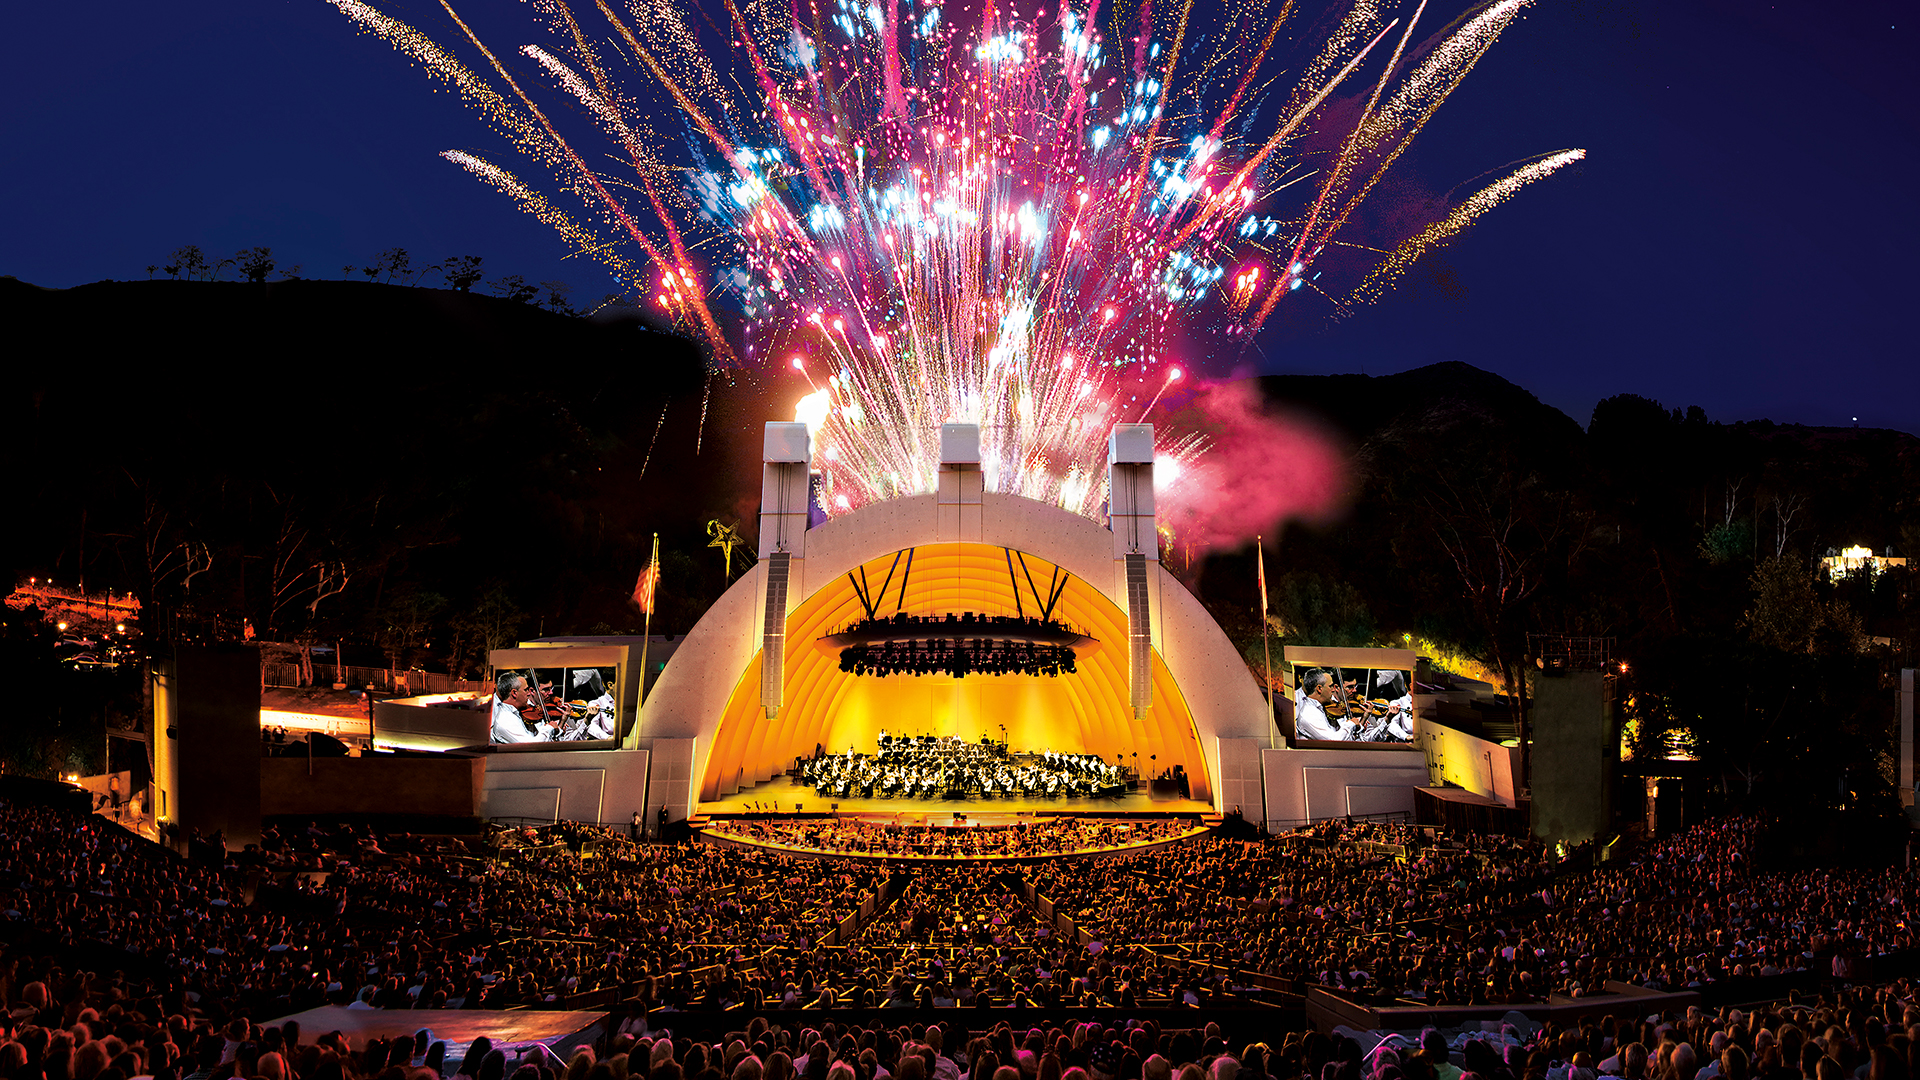 Fireworks at the Hollywood Bowl in Hollywood, California